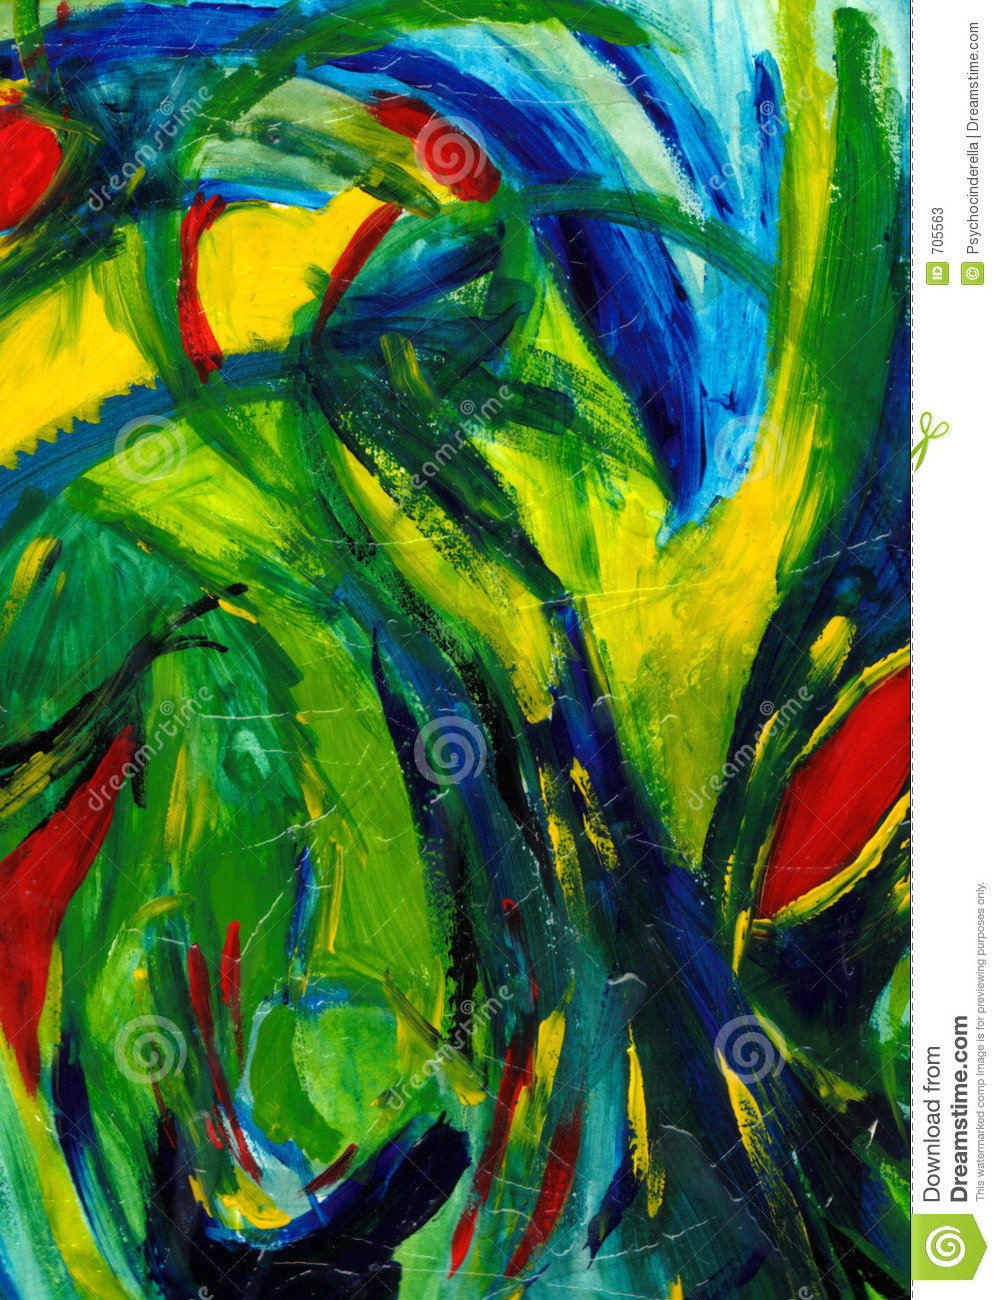 abstract art  hand painted stock photos  image  - abstract art colours hand painted